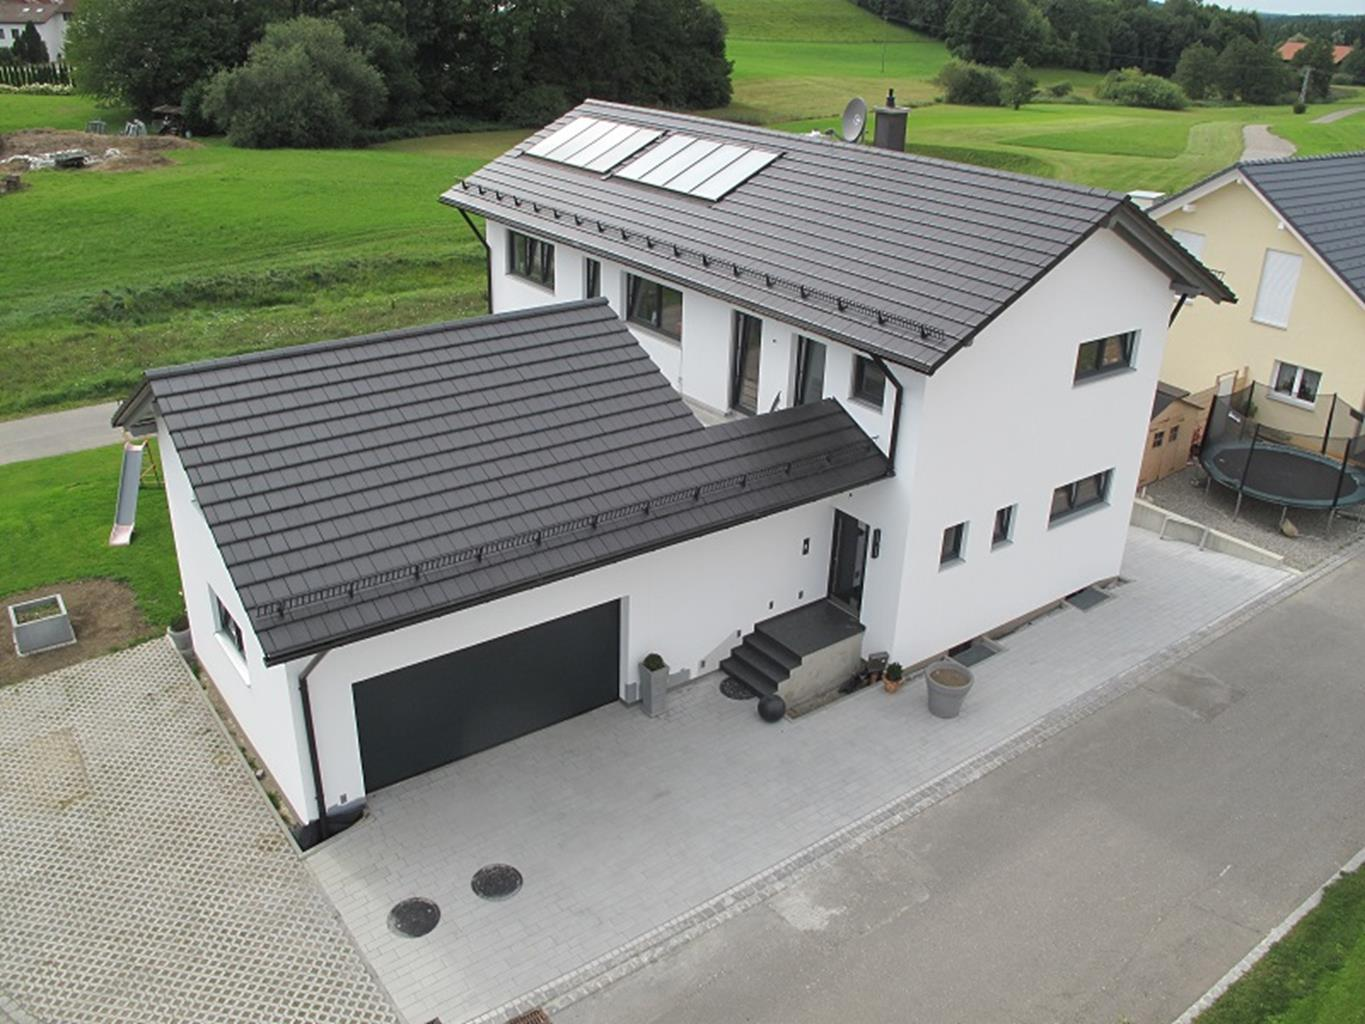 Image of house with solar panels